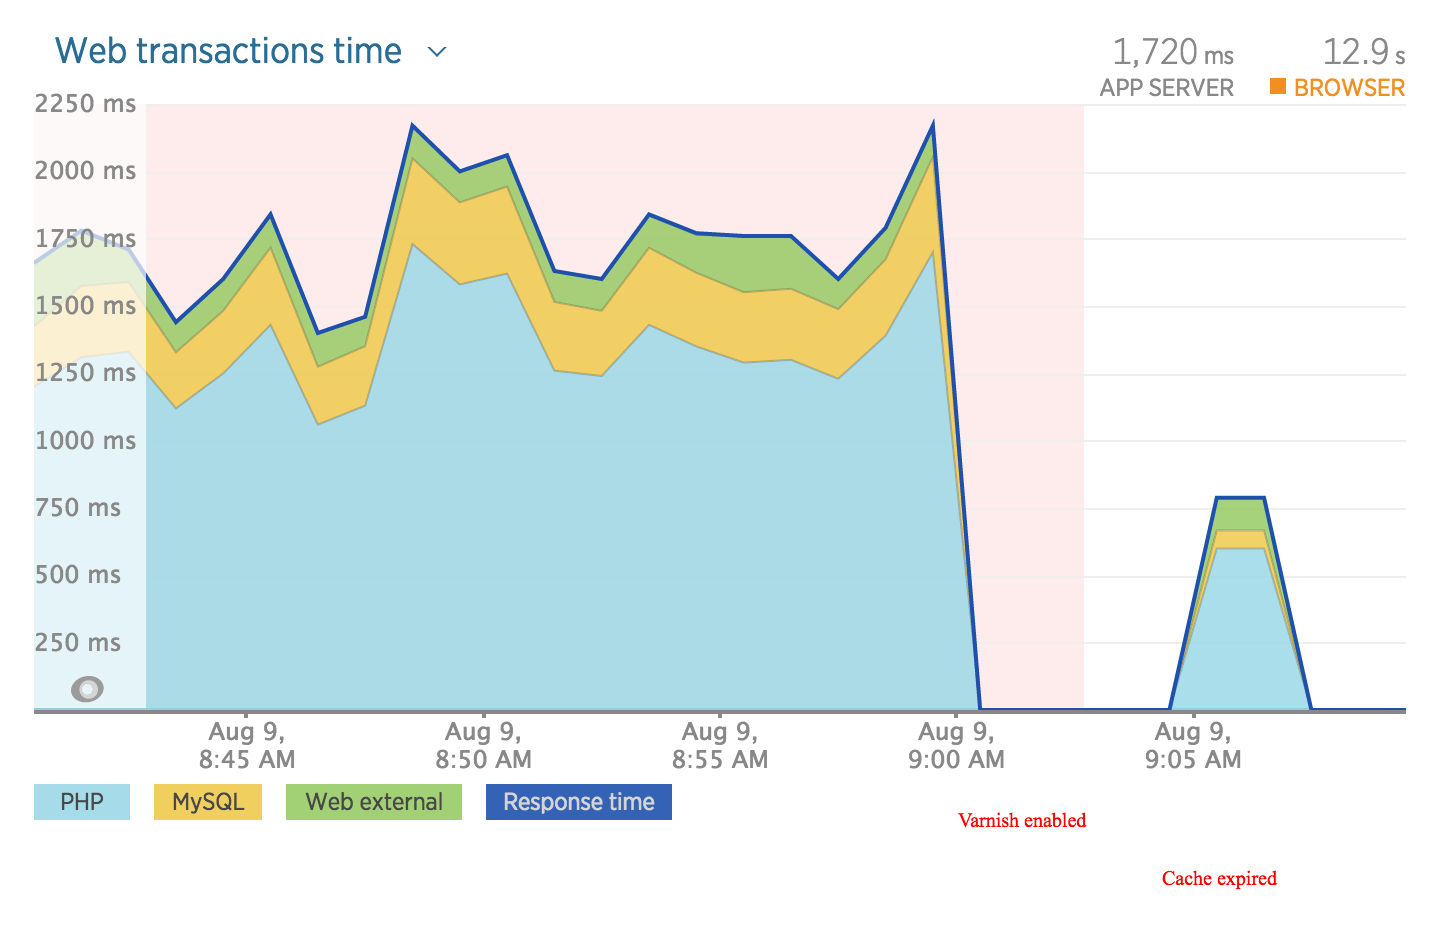 New Relic Varnish enabled